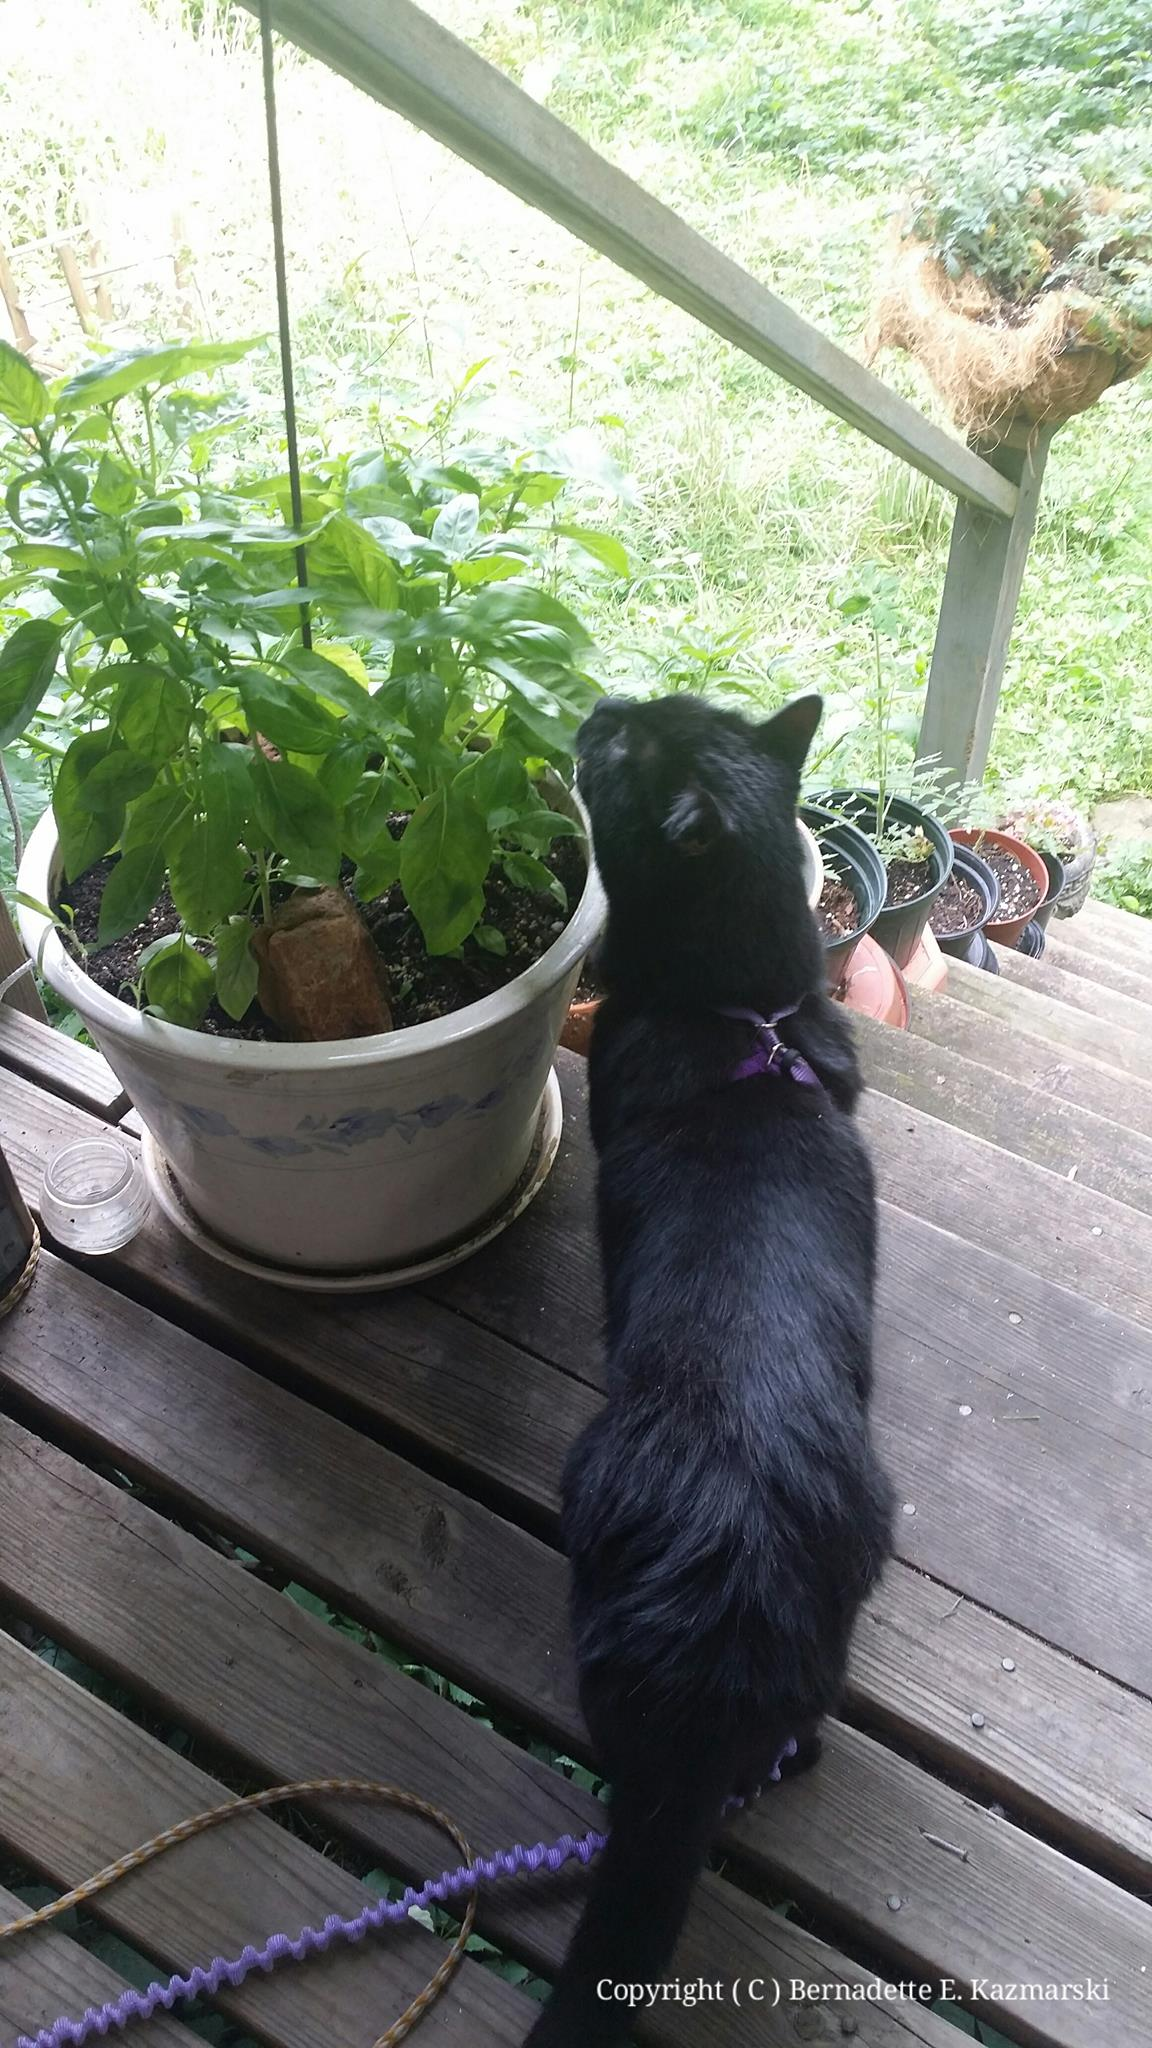 Mewsette has joined us this afternoon and of all things has found the parsley and basil--she already ate all the plants I used to have in the house.